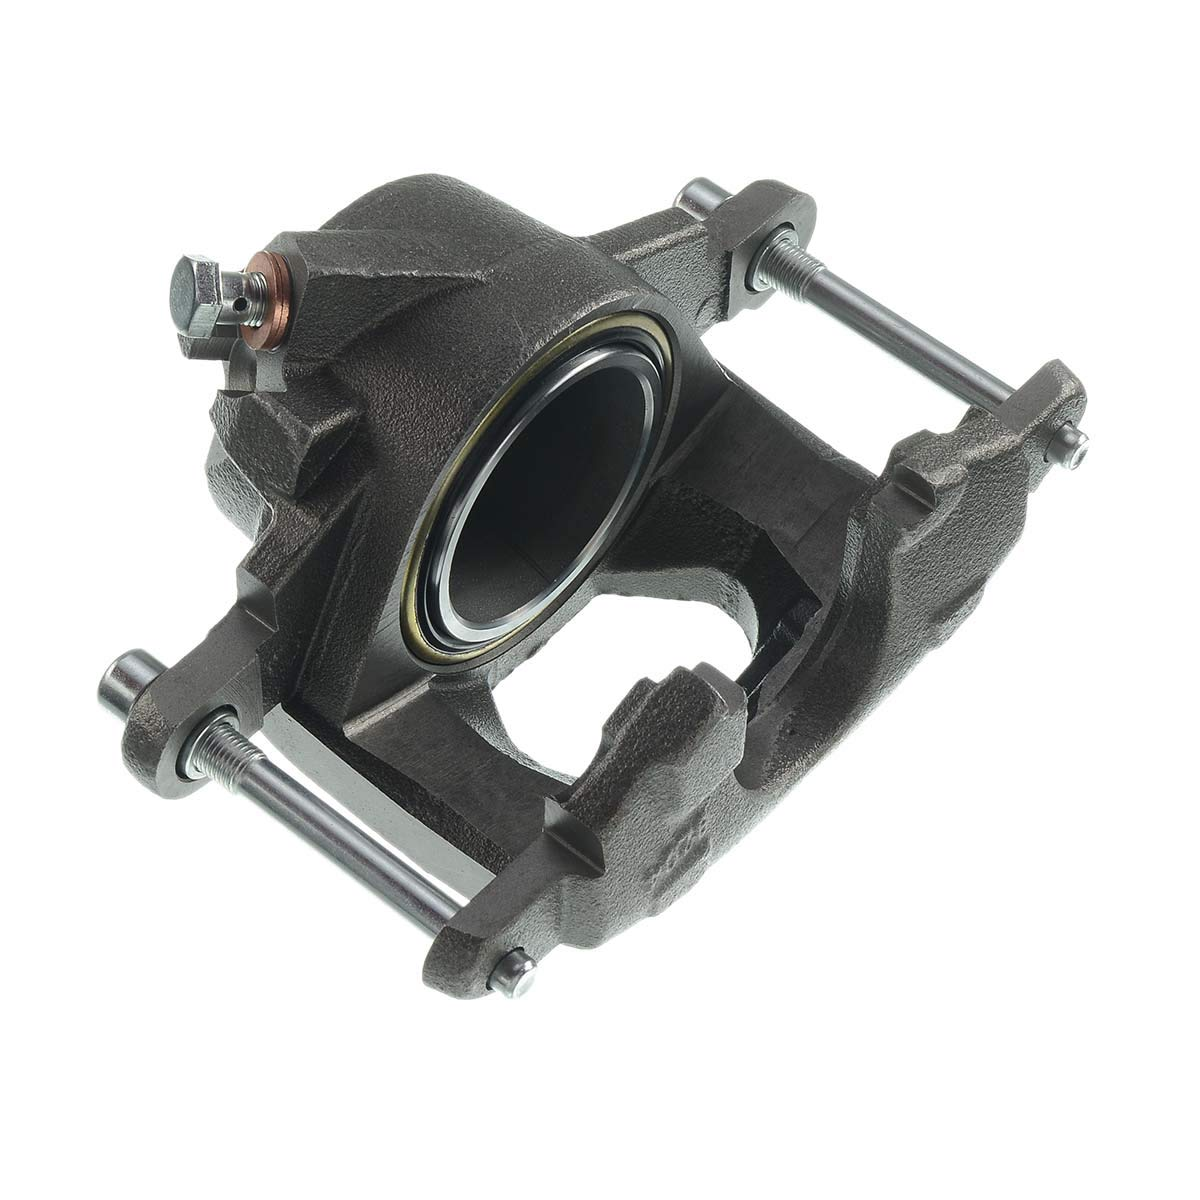 Front Left Brake Caliper Assembly Replacement for Chevrolet GMC Buick Pontiac Oldsmobile